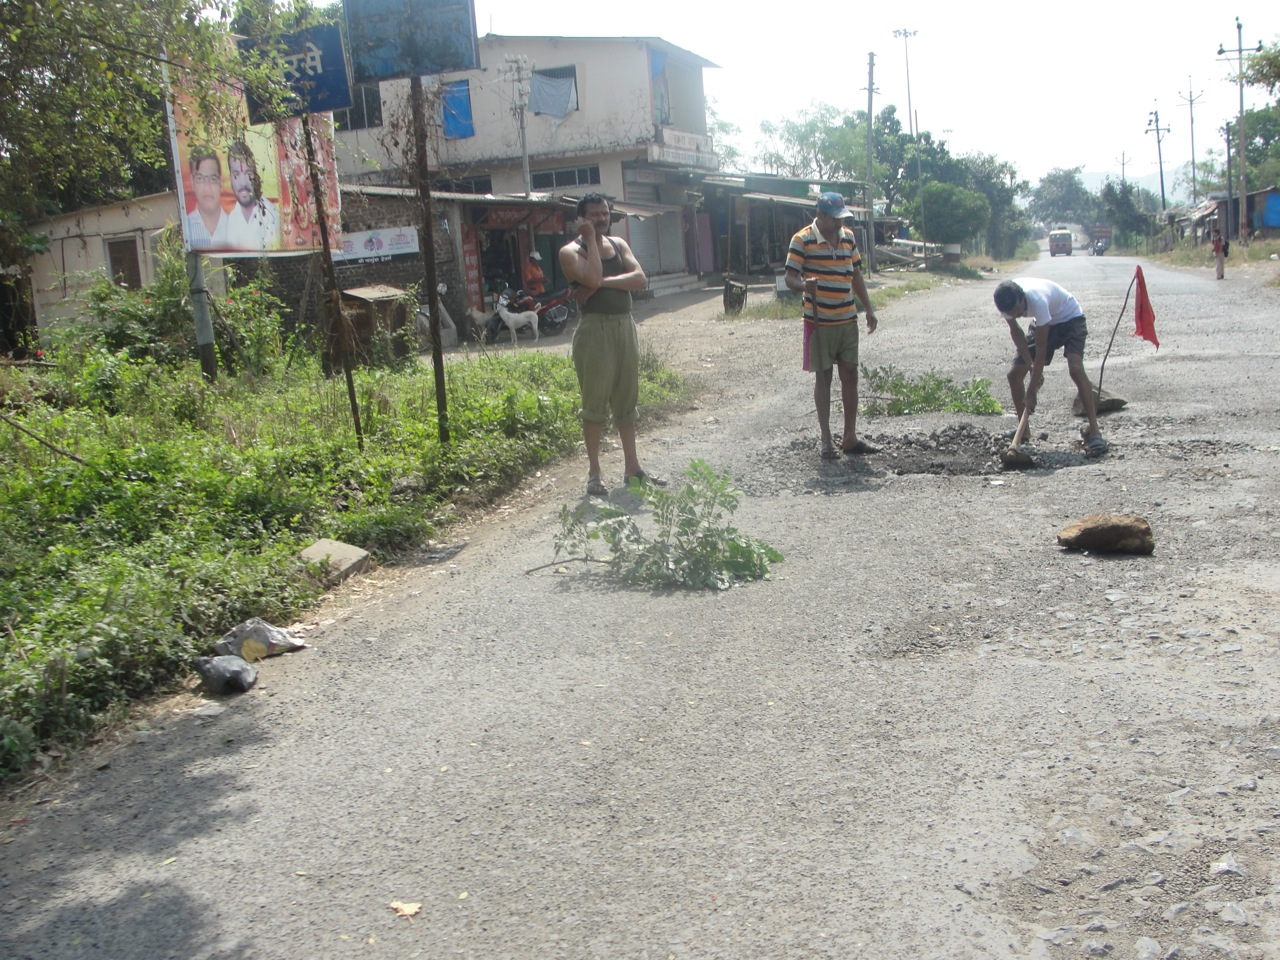 Men fixing road near Mumbai